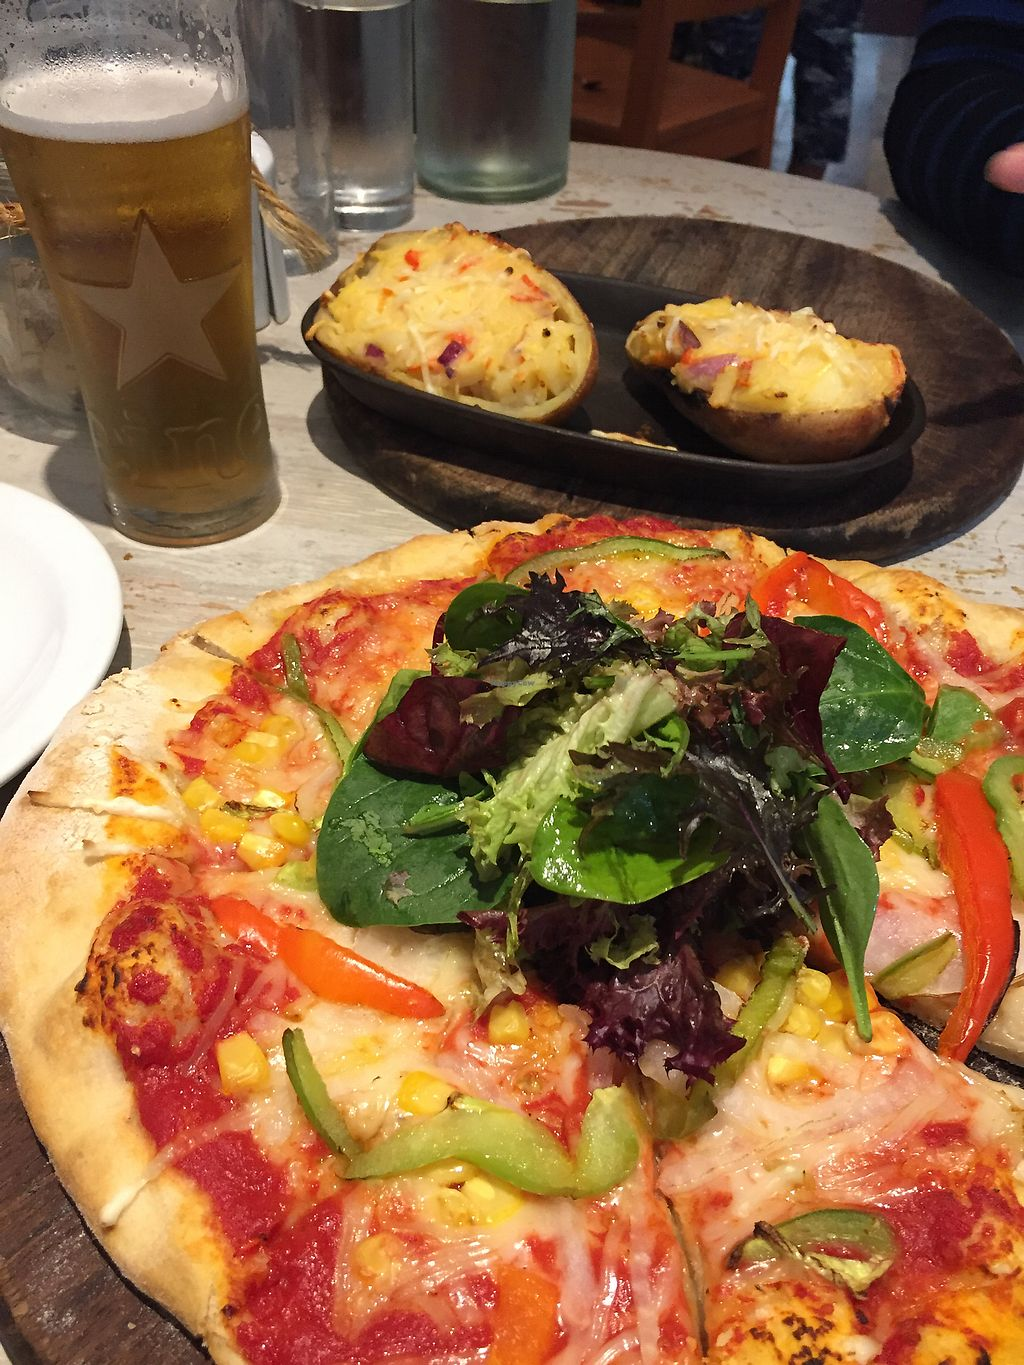 """Photo of Pizzas 'n' Cream  by <a href=""""/members/profile/TLC%20Veg."""">TLC Veg.</a> <br/>Pizza and potato skins :) <br/> September 26, 2017  - <a href='/contact/abuse/image/92402/308721'>Report</a>"""